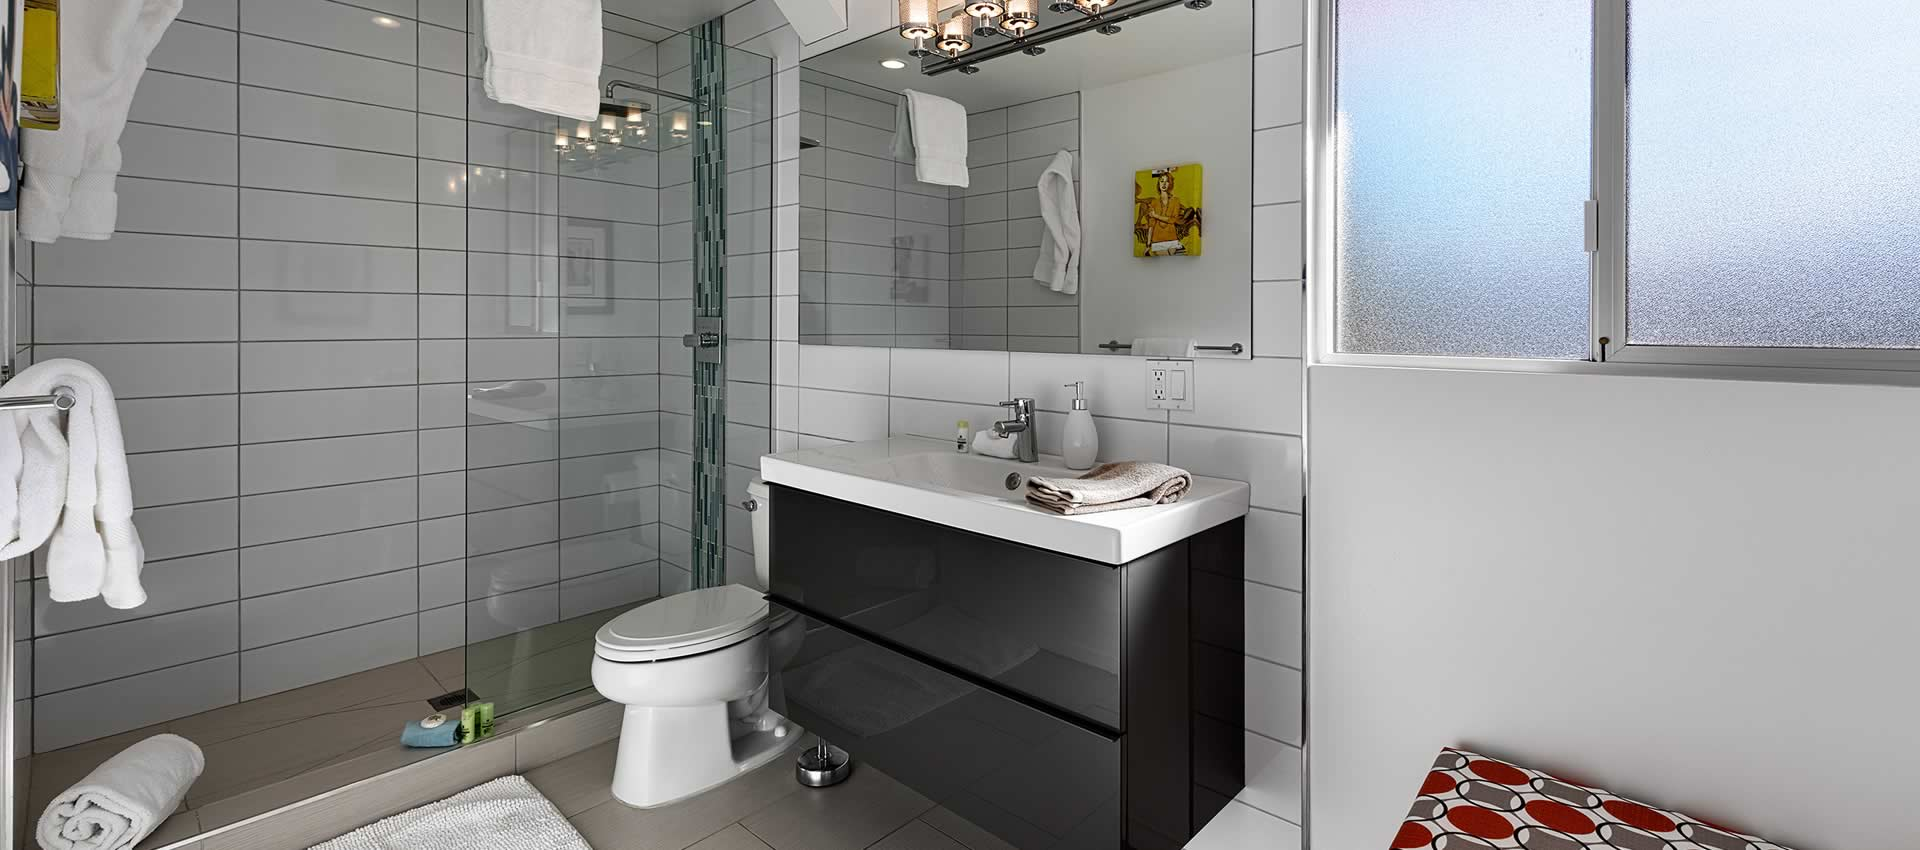 twist hotel room 219 bathroom with sink and shower